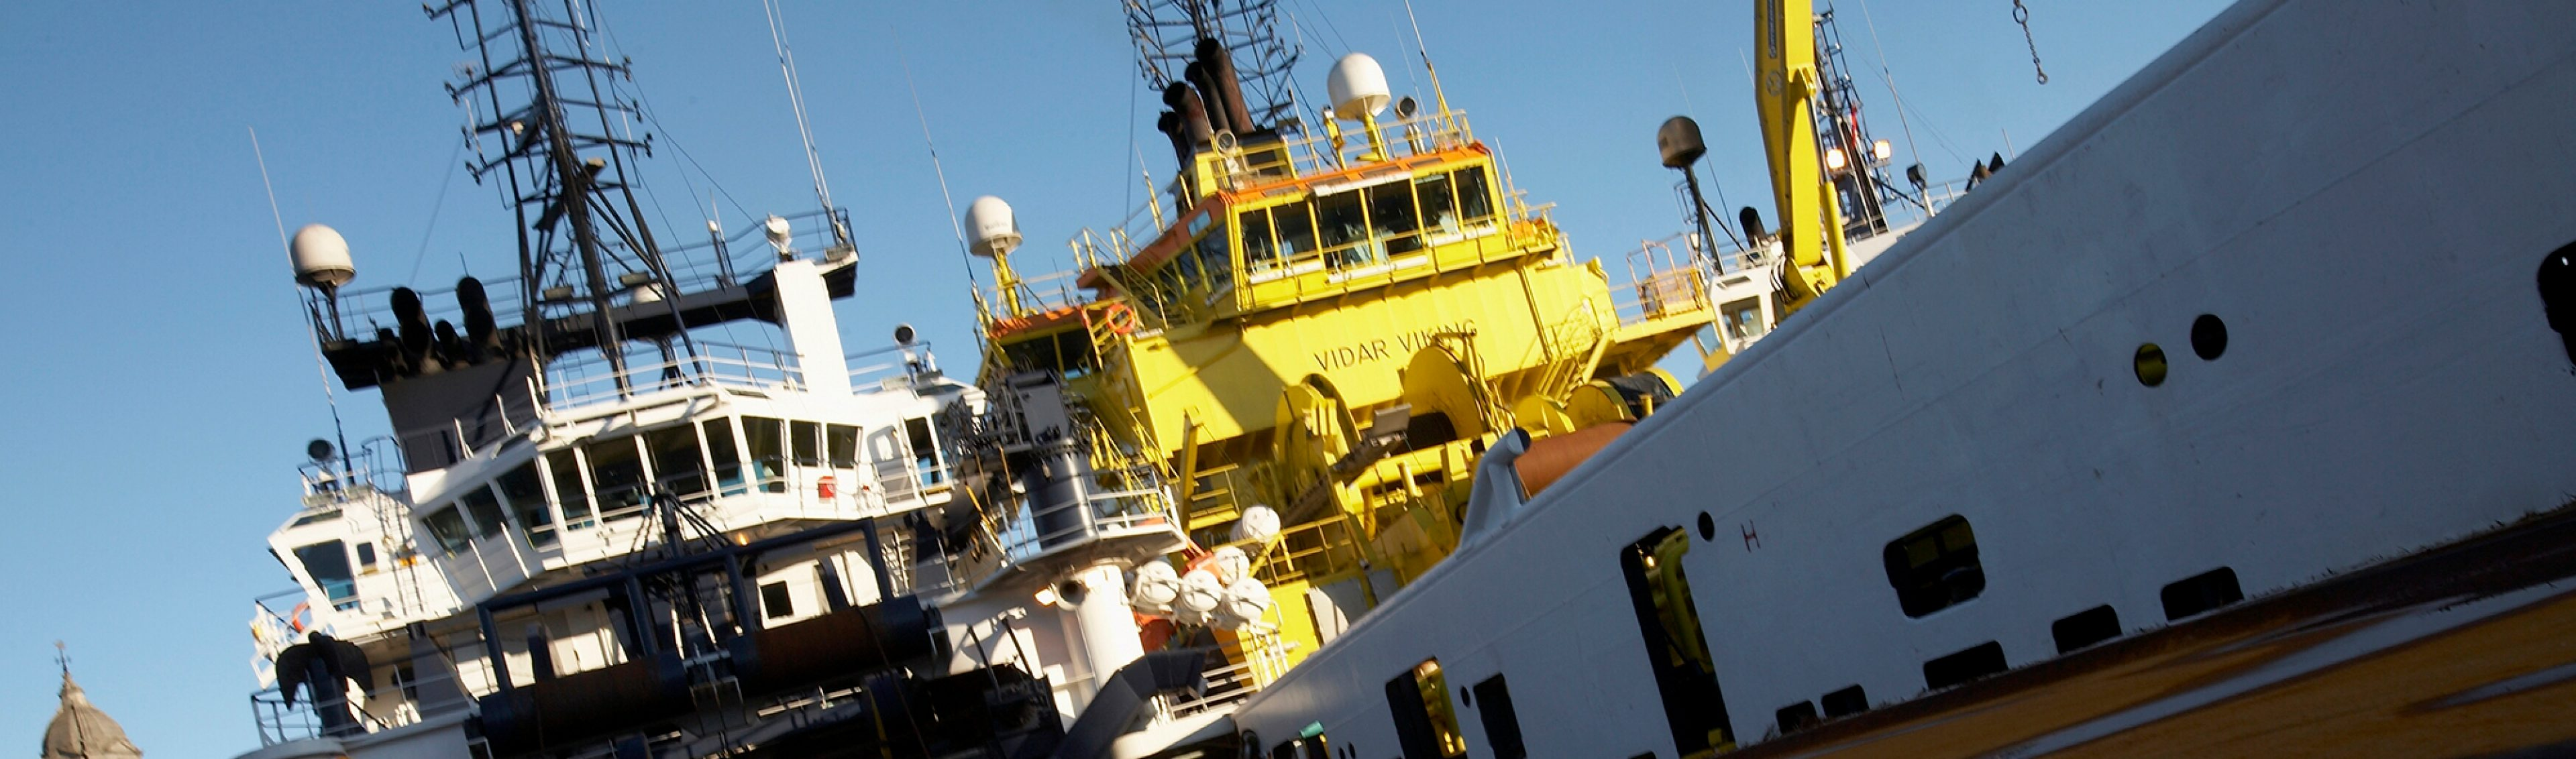 A view from the deck onboard a supply vessel at Aberdeen port, Scotland.